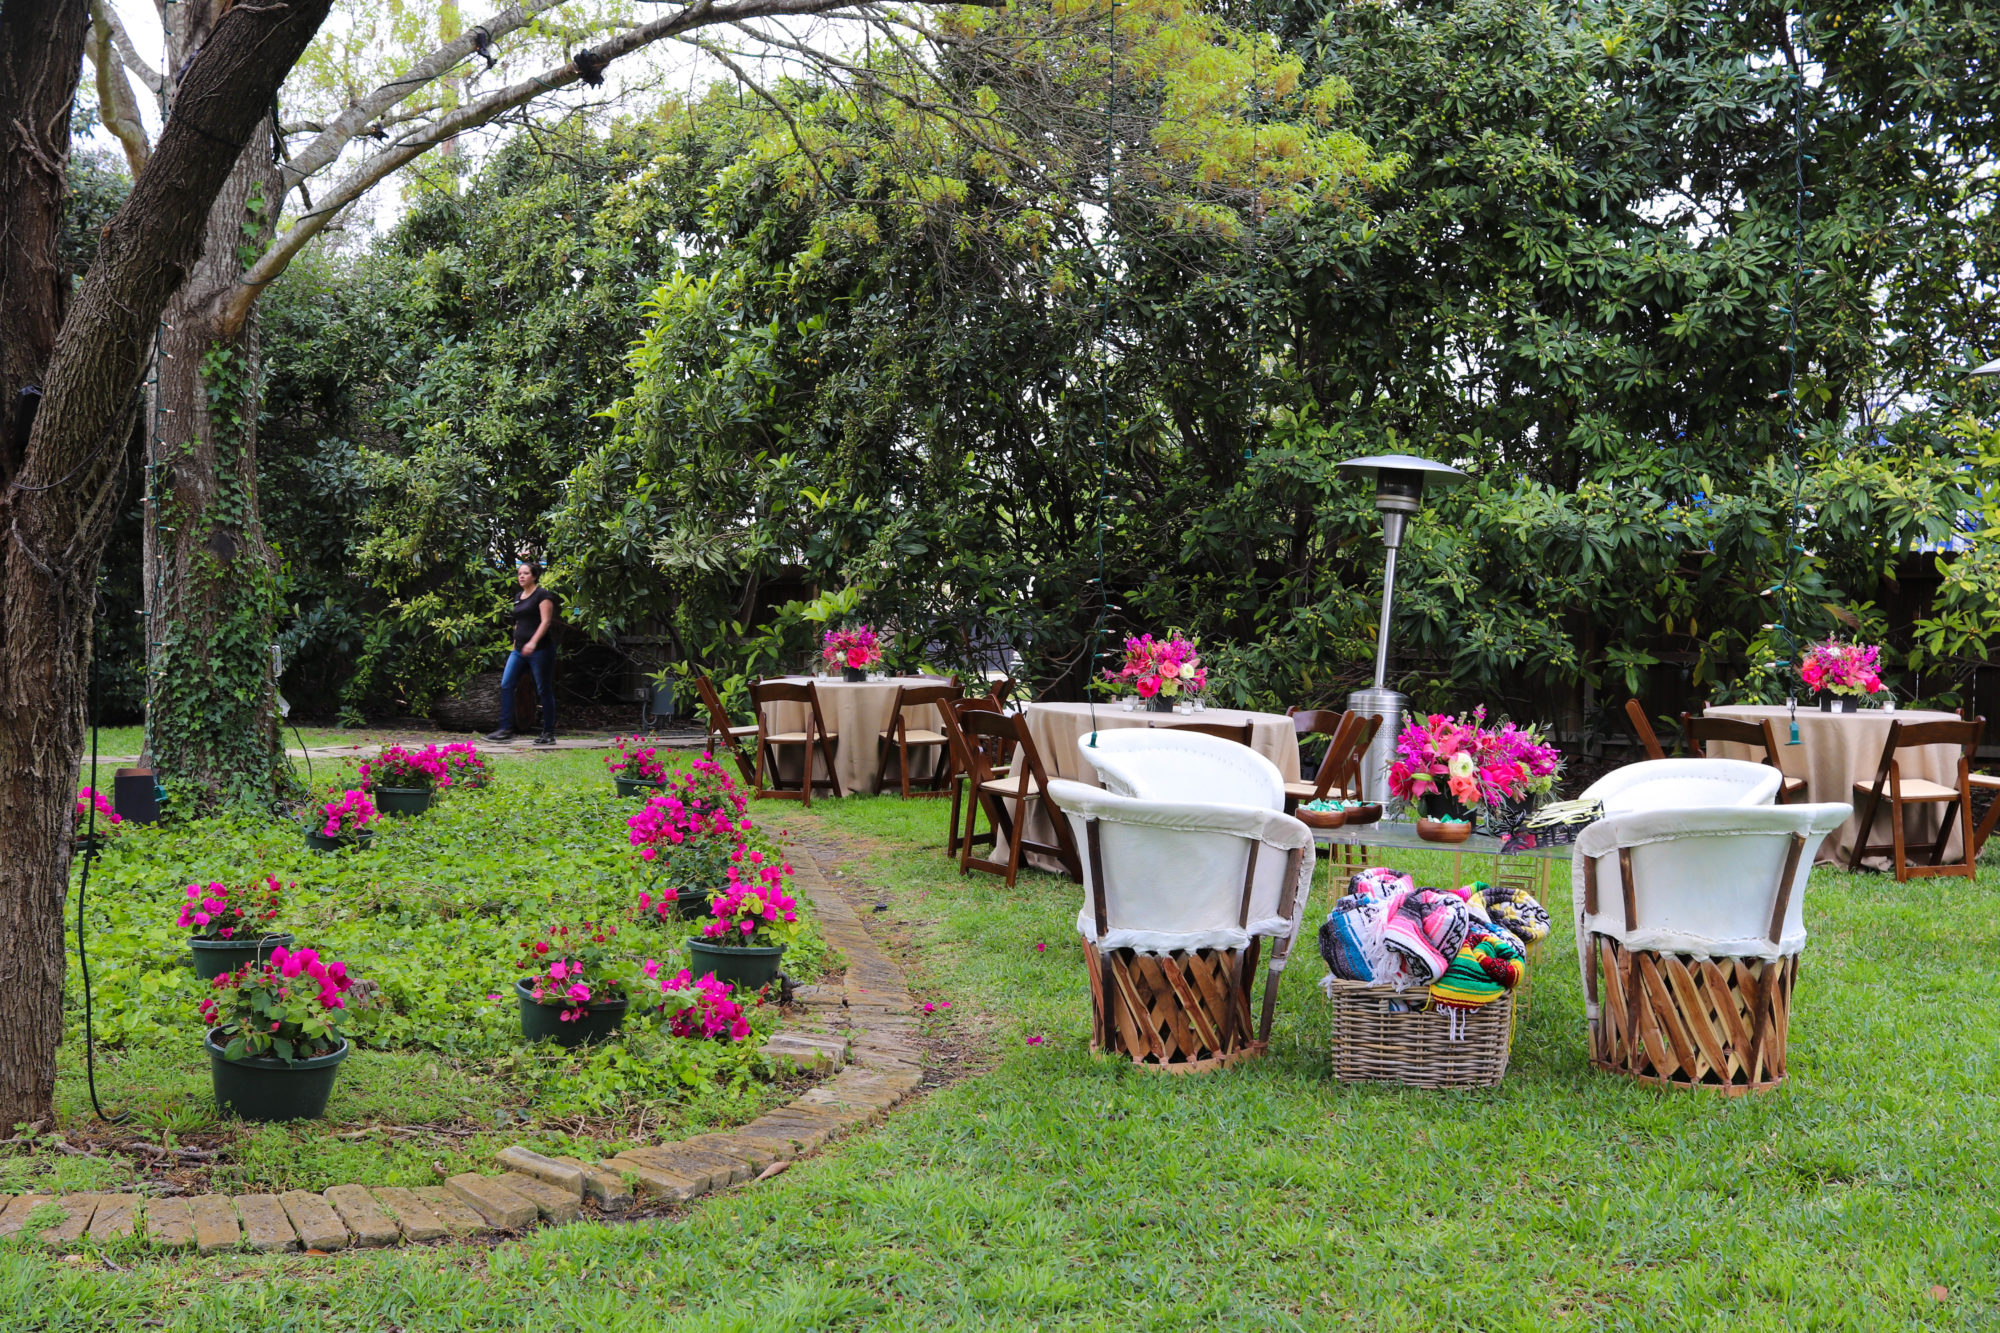 Floral-Reception-Area-in-Backyard-Grass-at-Sweet-August-Backyard-Wedding-e1557772724987